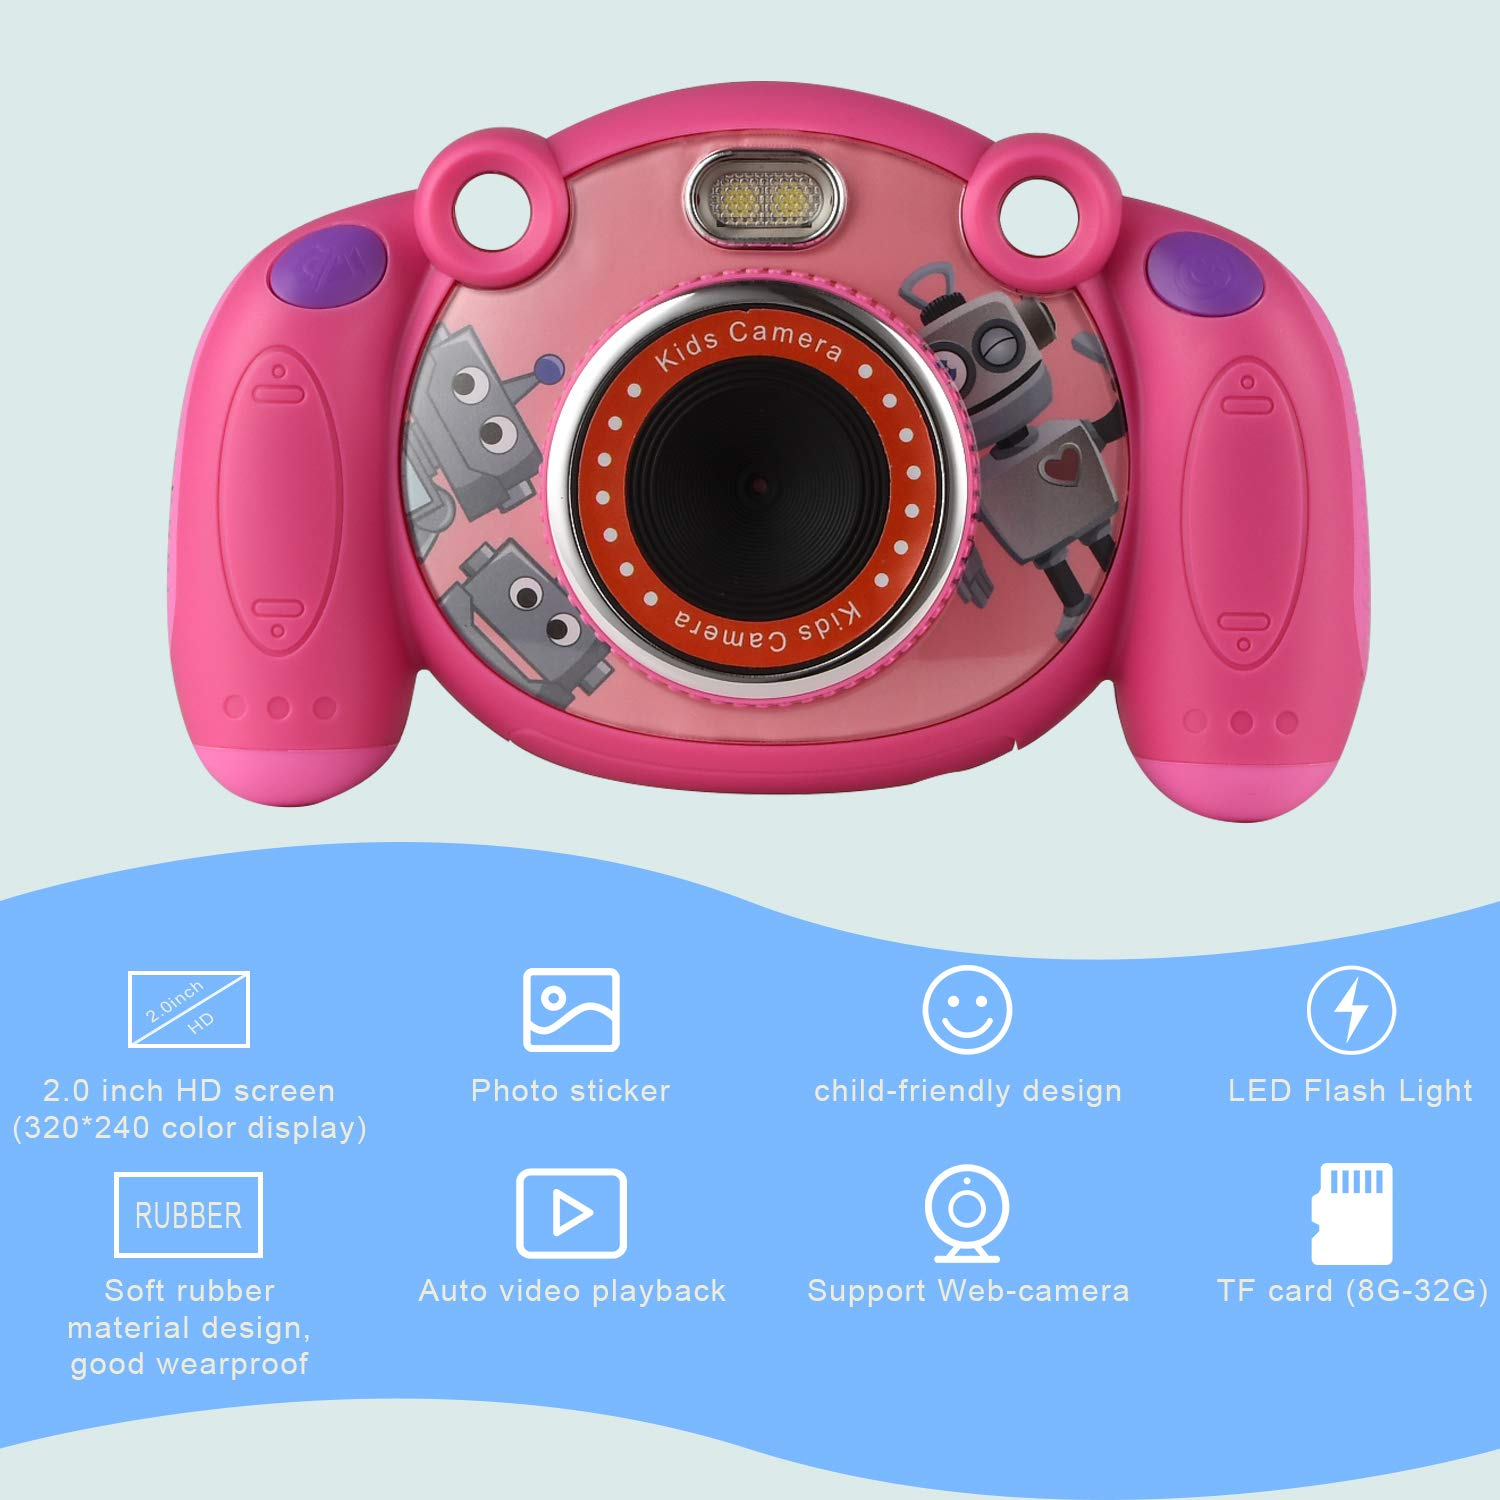 eyesen Kids Camera Digital Child Camcorder Shockproof Mini Camera with LED Flash Light and 2.0 Inch Sreen, Gifts for 4-8 Year Old Girls by eyesen (Image #2)